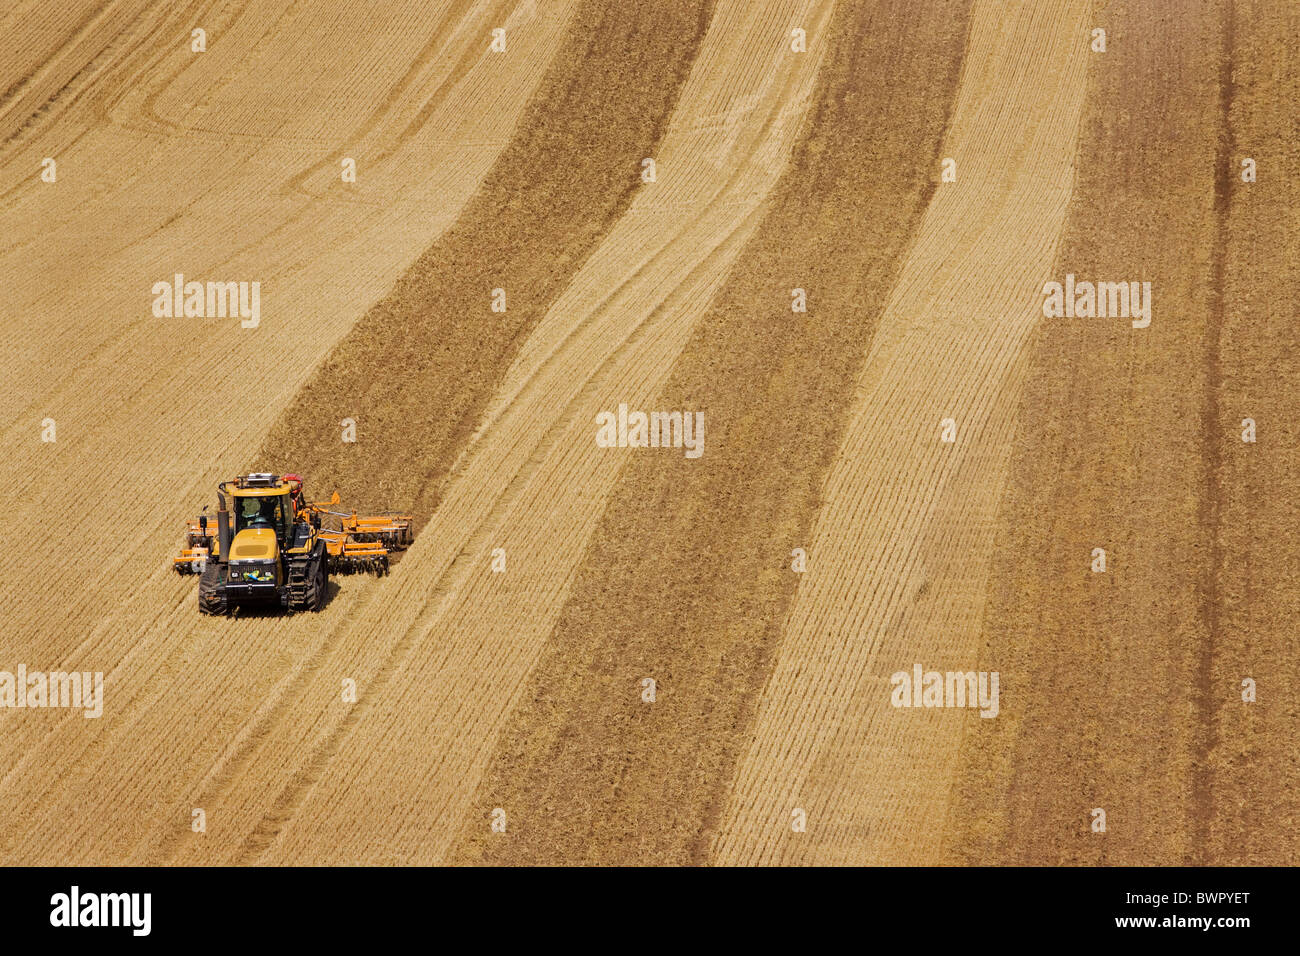 Ploughing Ivinghoe Chiltern Buckinghamshire downlands Chilterns farming - Stock Image